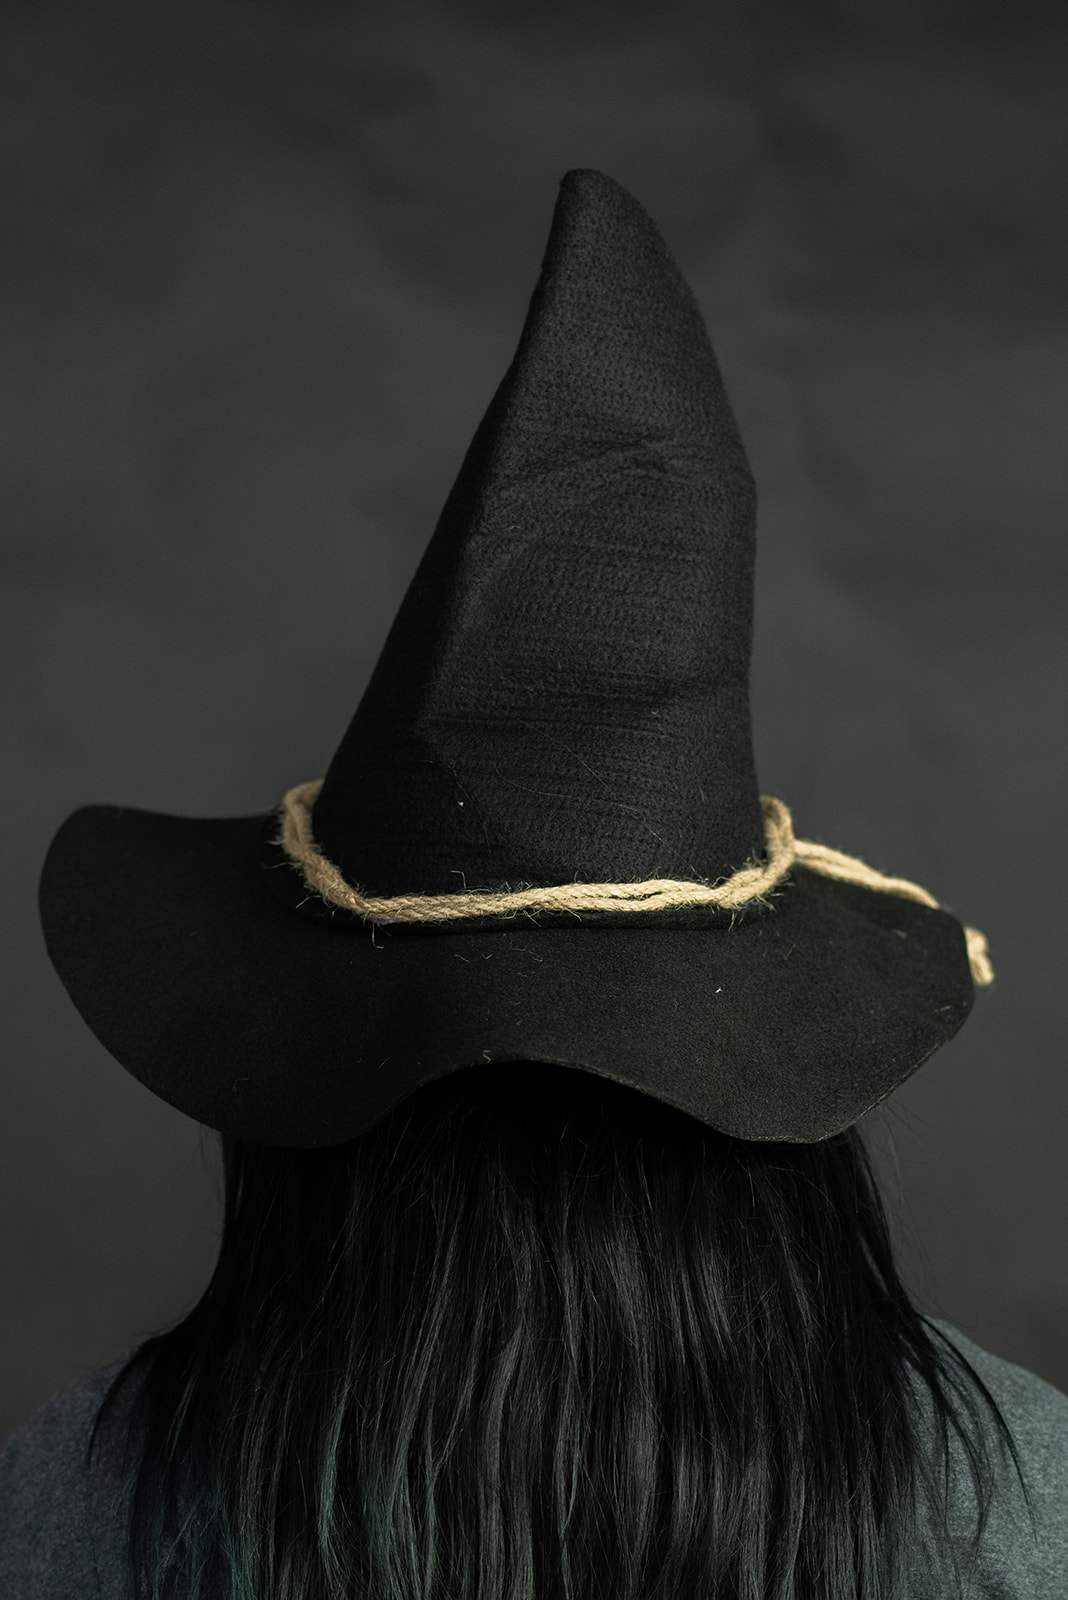 thumbnail 4 - Adult Scarecrow Hat Deluxe Felt Oktoberfest Wizard Witch Hillbilly Hat Costume